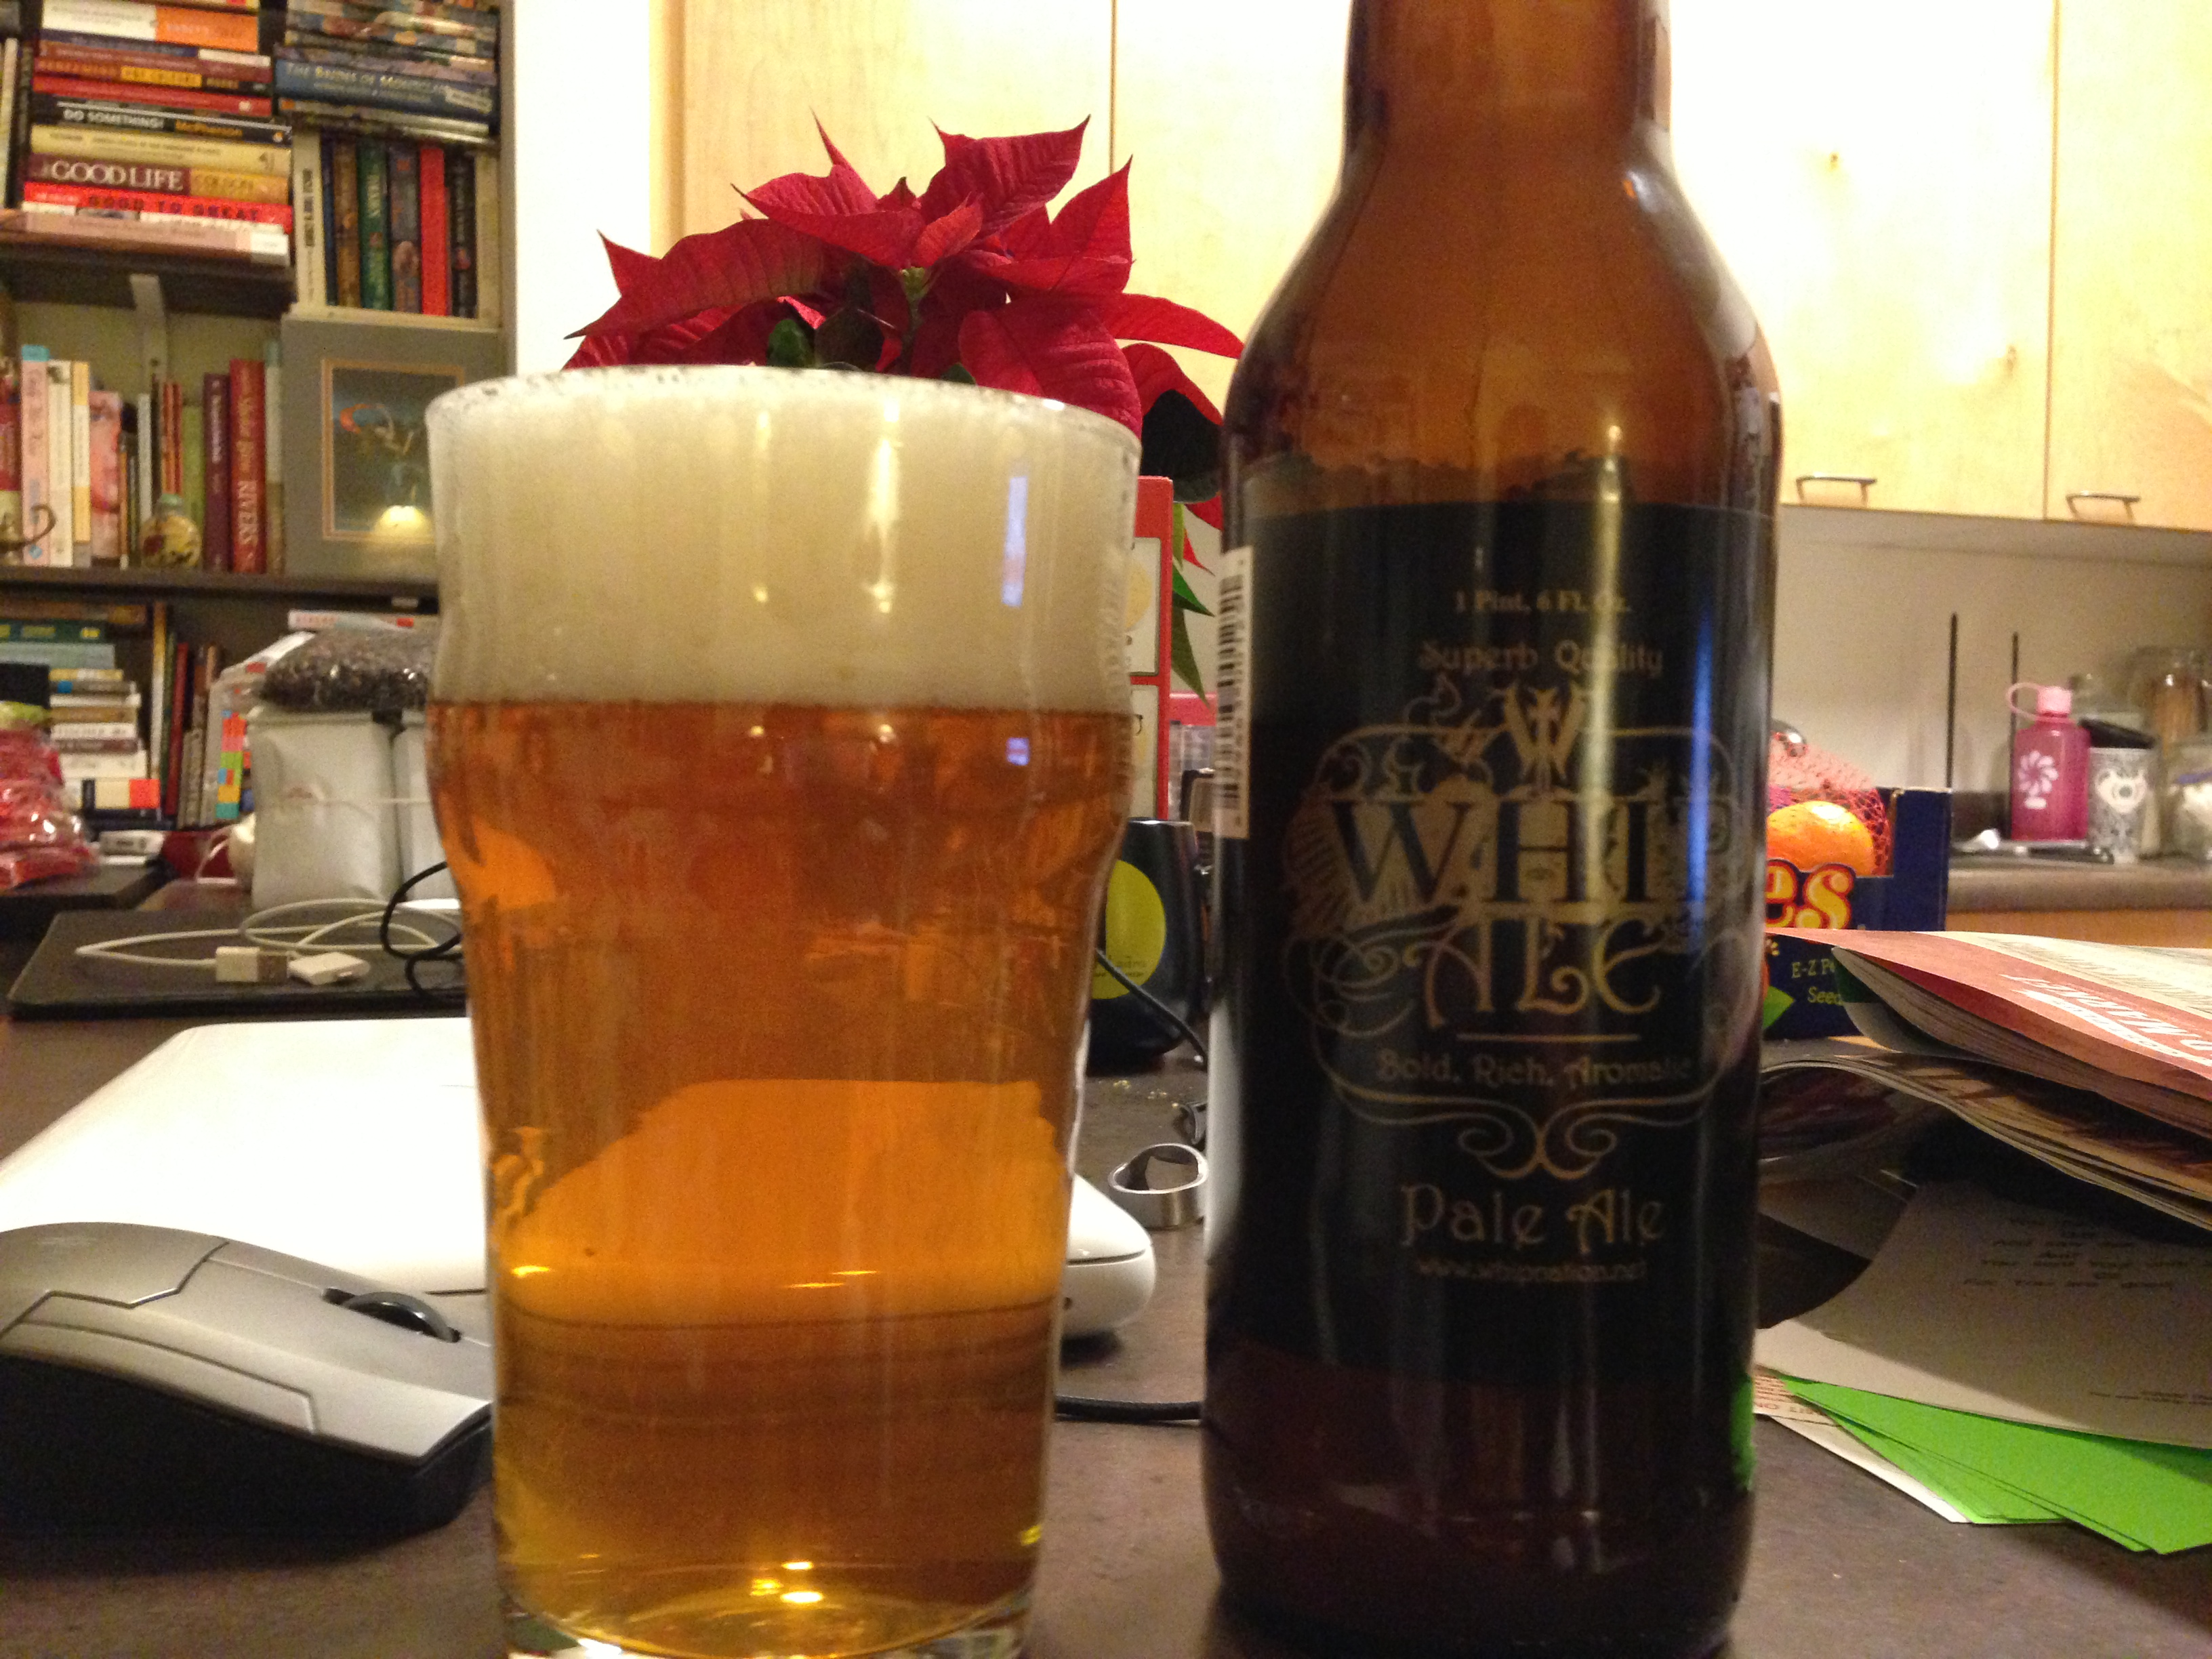 Diamond Knot Brewery's Whip Ale